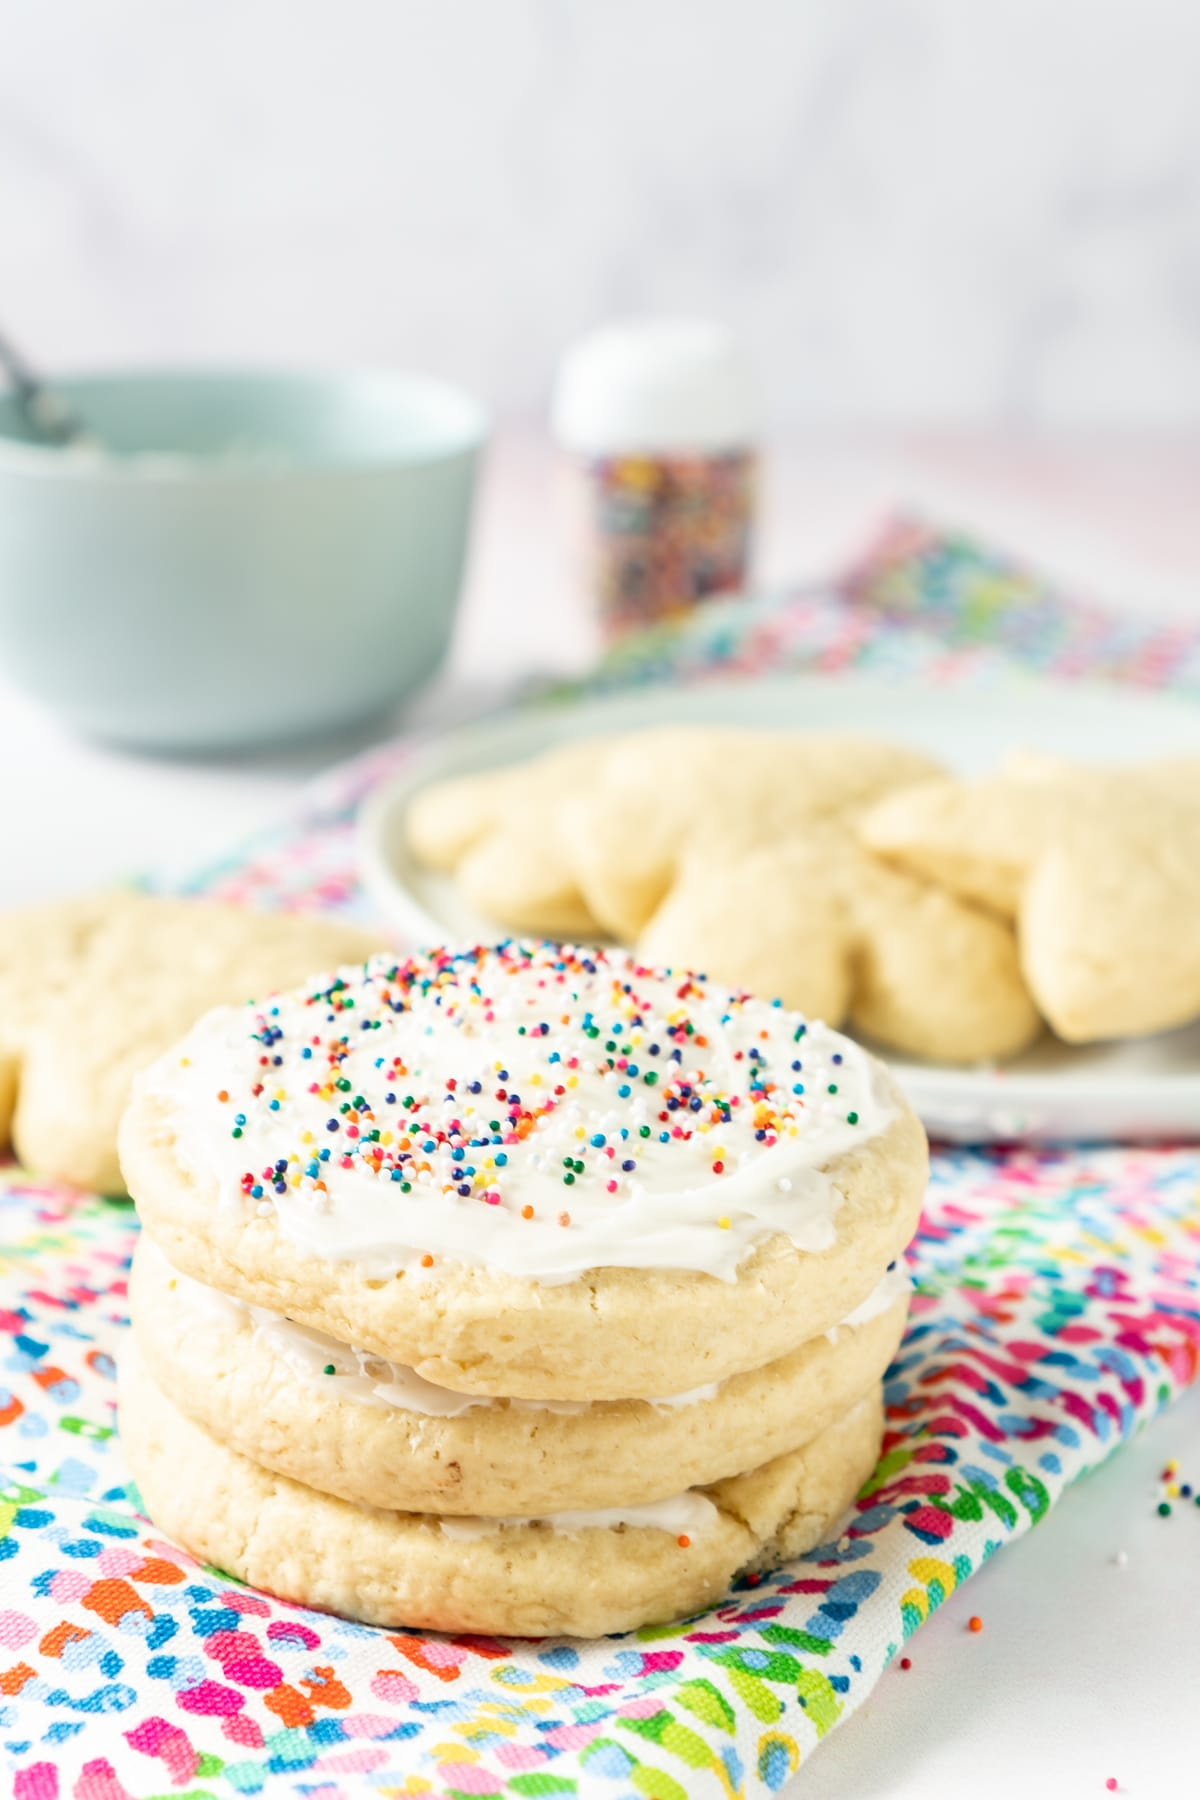 Stack of decorated cut out sugar cookies